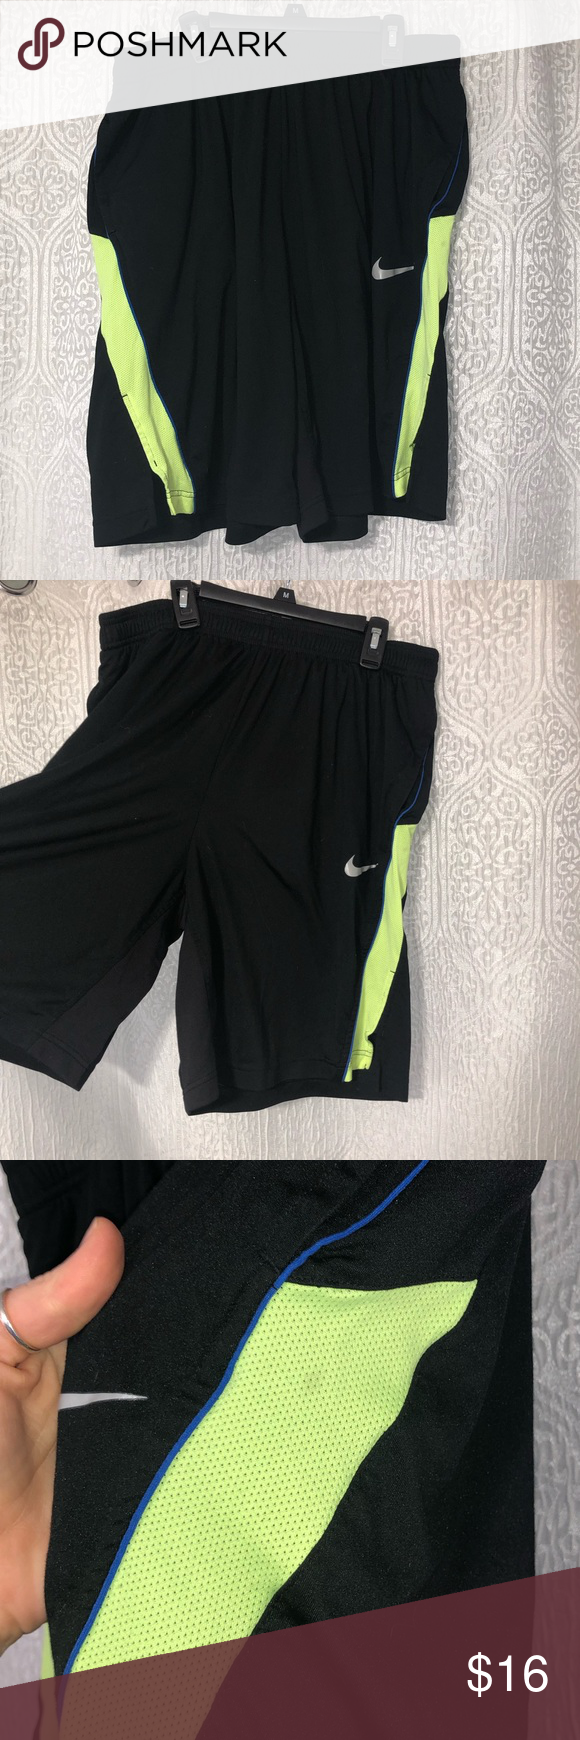 Men's Nike Dri Fit basketball shorts Sz. XL | Nike dri fit